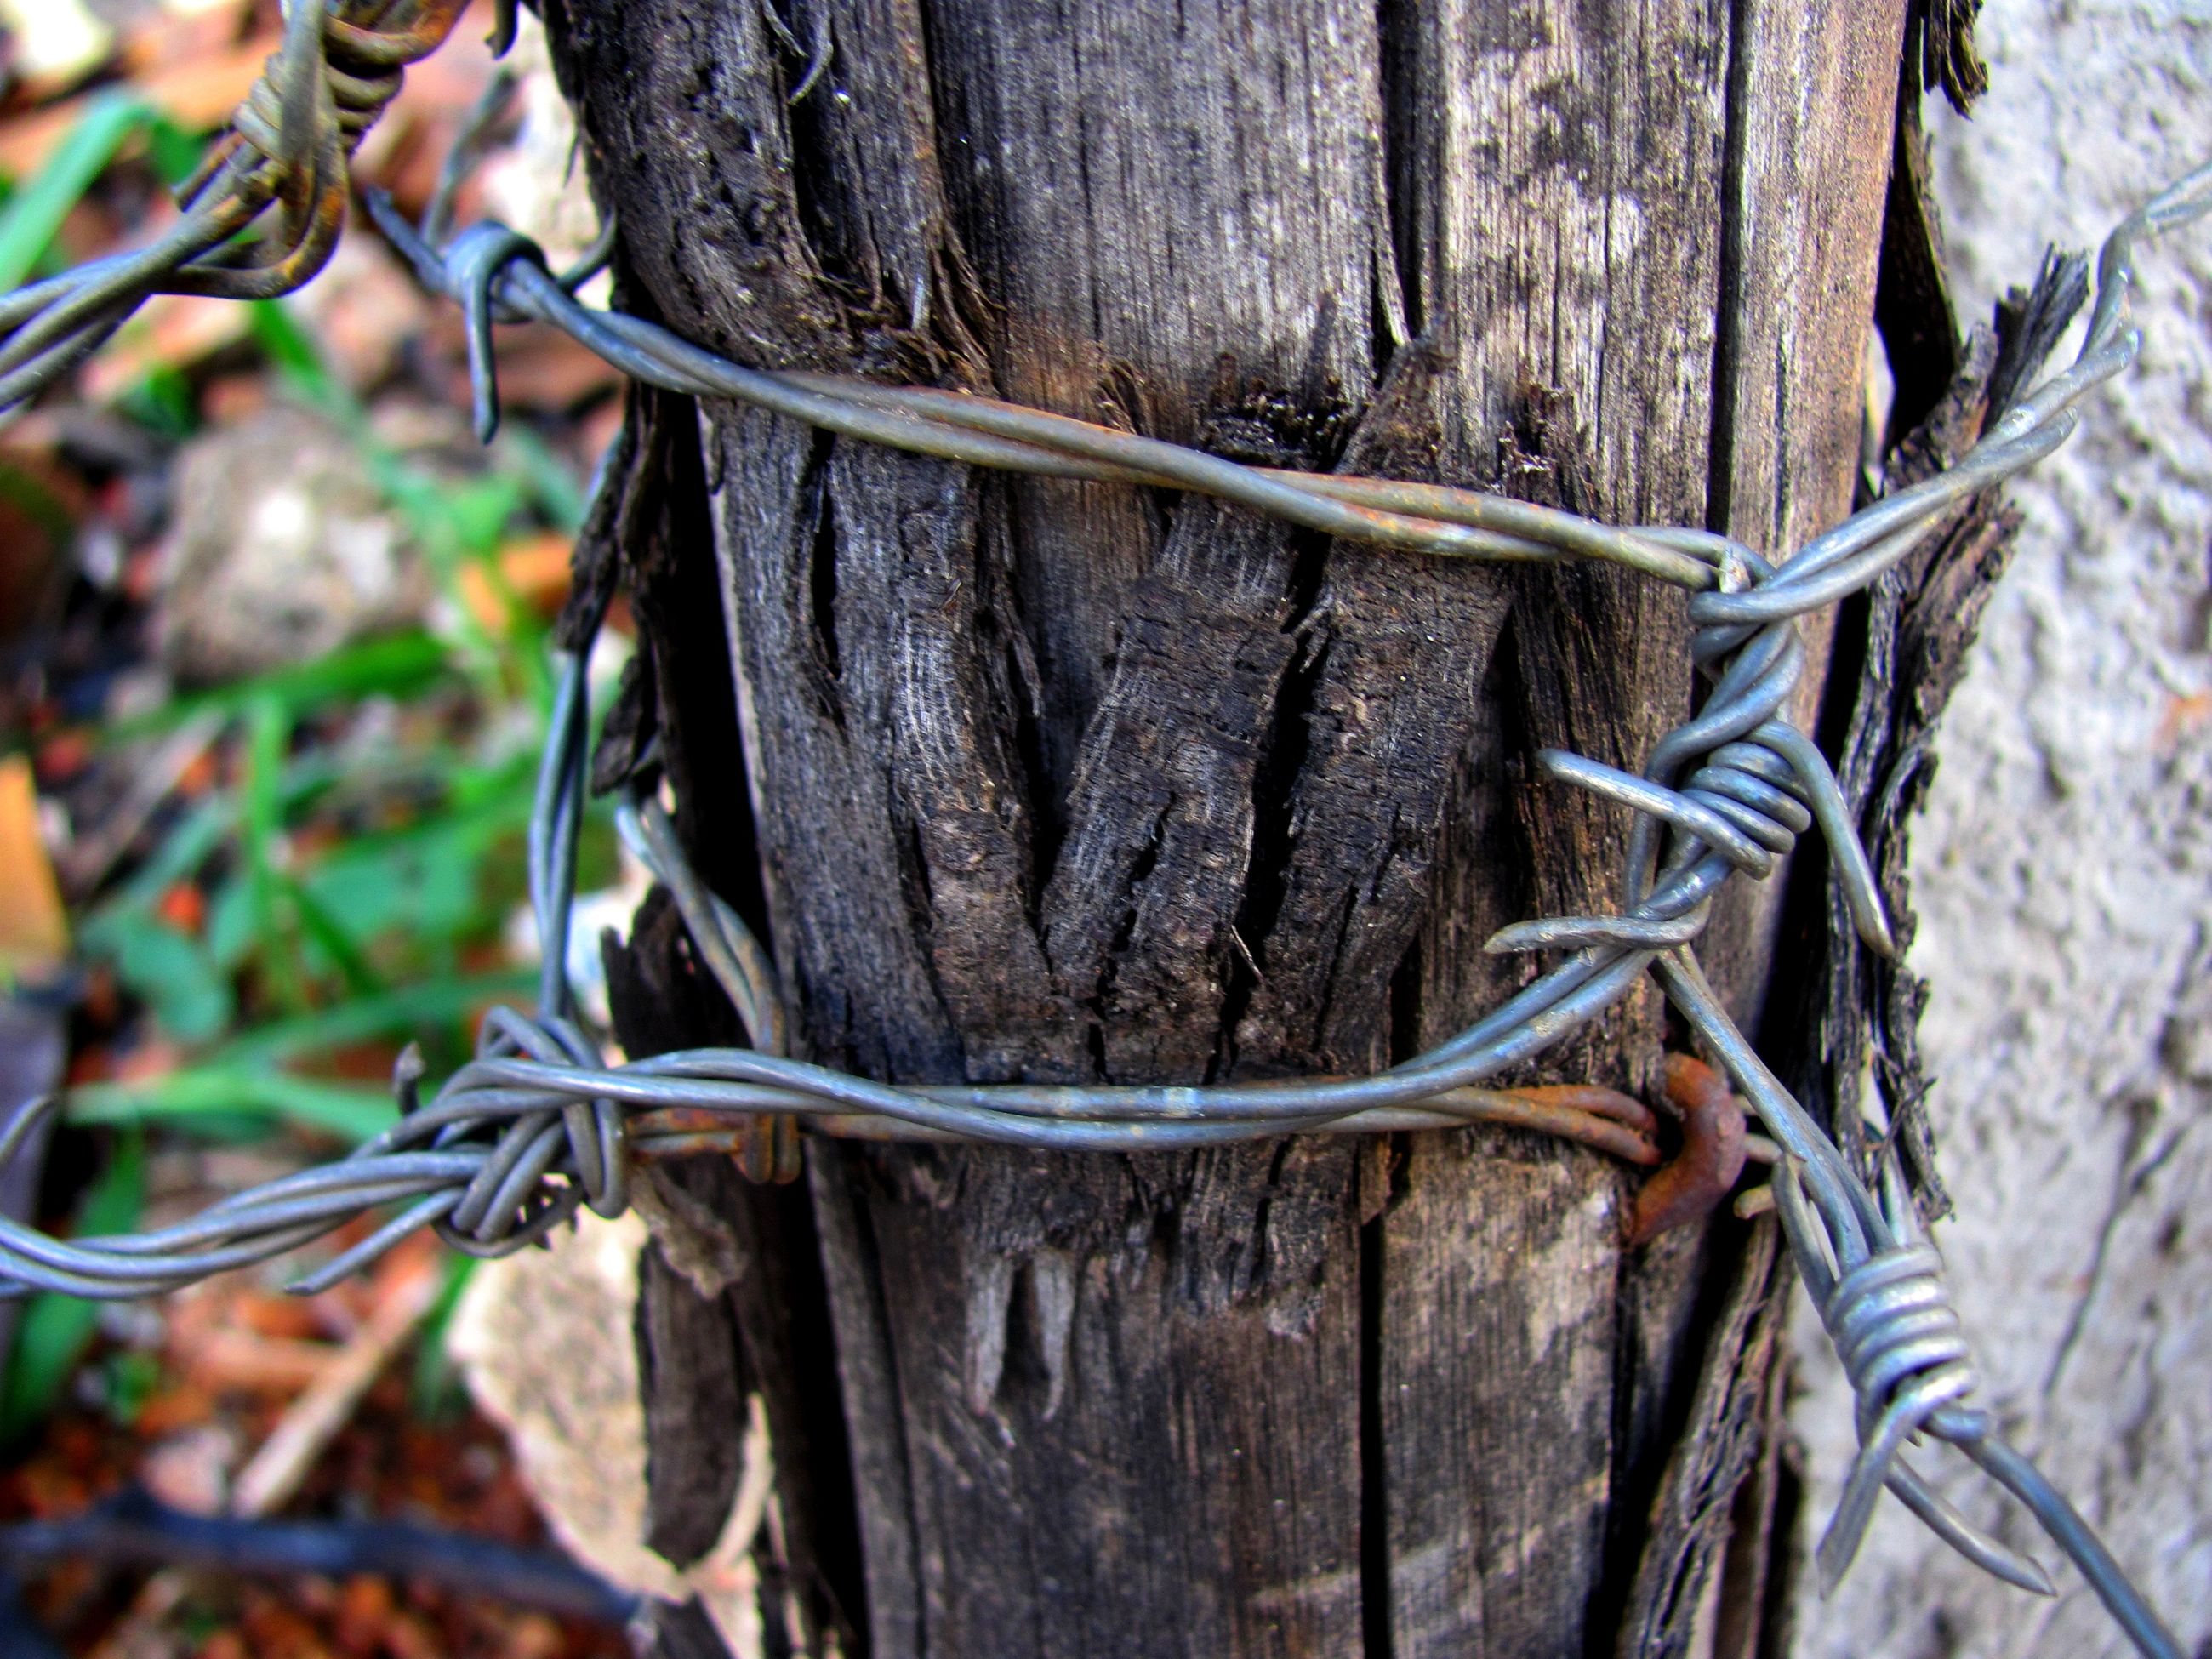 day, outdoors, tree, no people, tree trunk, tied up, close-up, nature